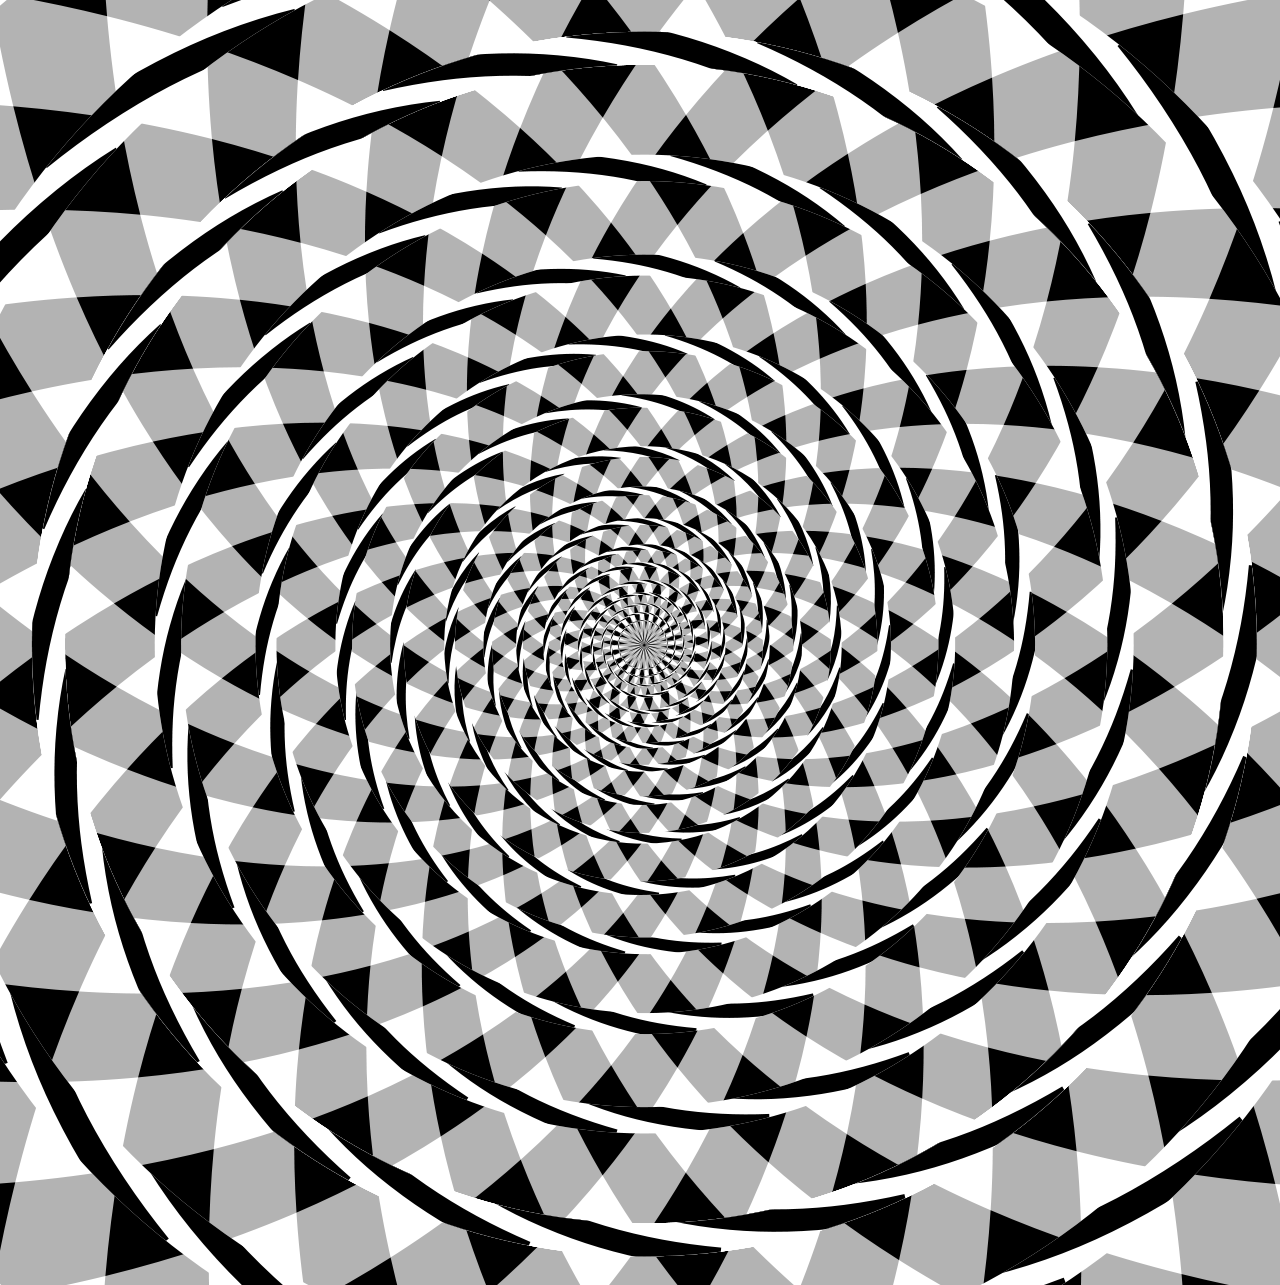 Arcs giving the appearance of a spiral, but in reality concentric circles on a black, white, and gray background.